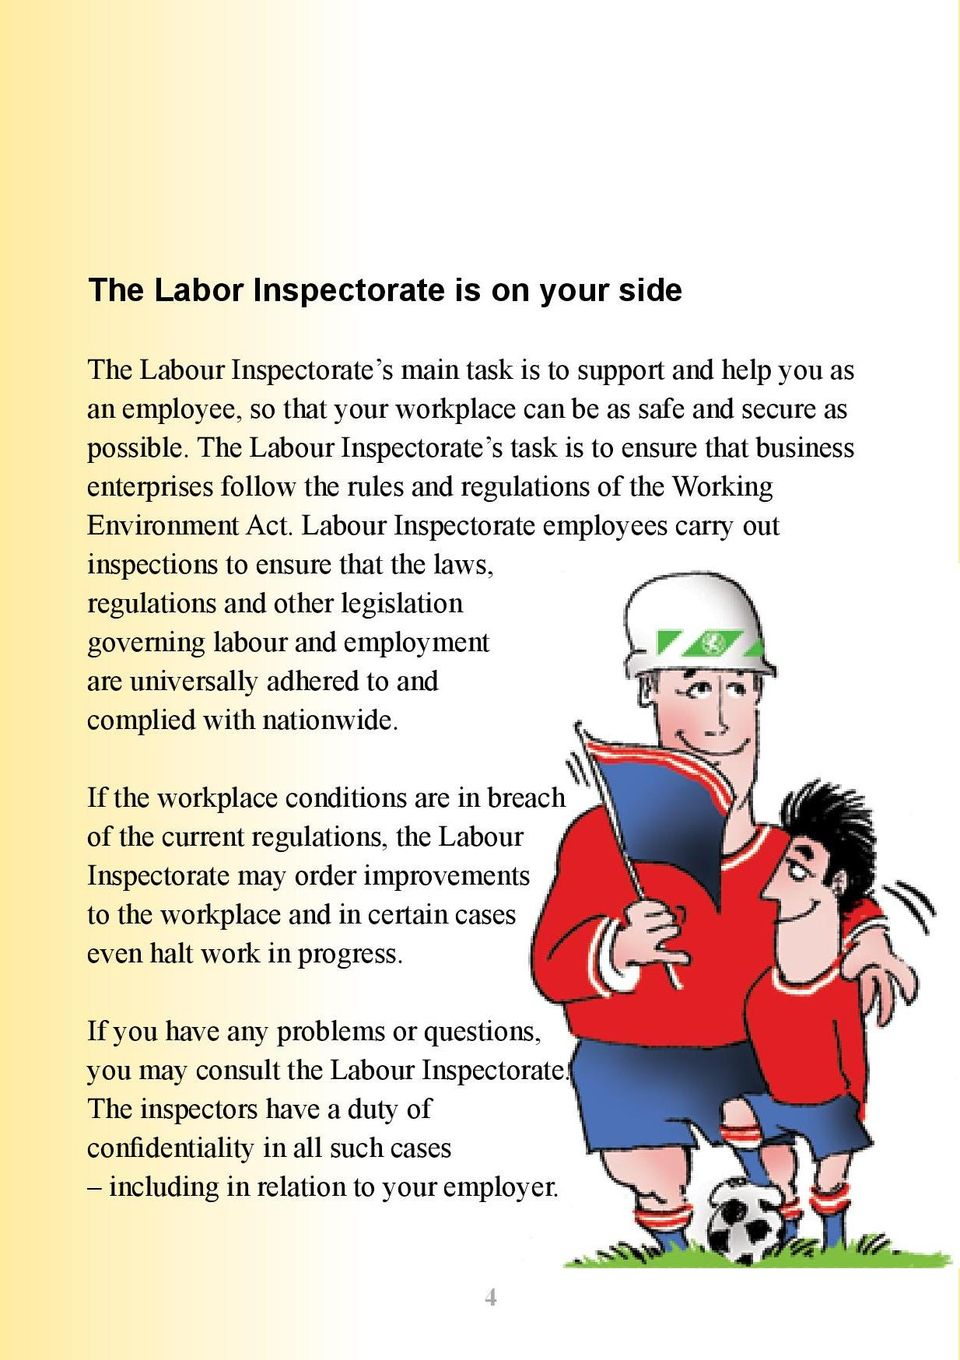 Labour Inspectorate employees carry out inspections to ensure that the laws, regulations and other legislation governing labour and employment are universally adhered to and complied with nationwide.